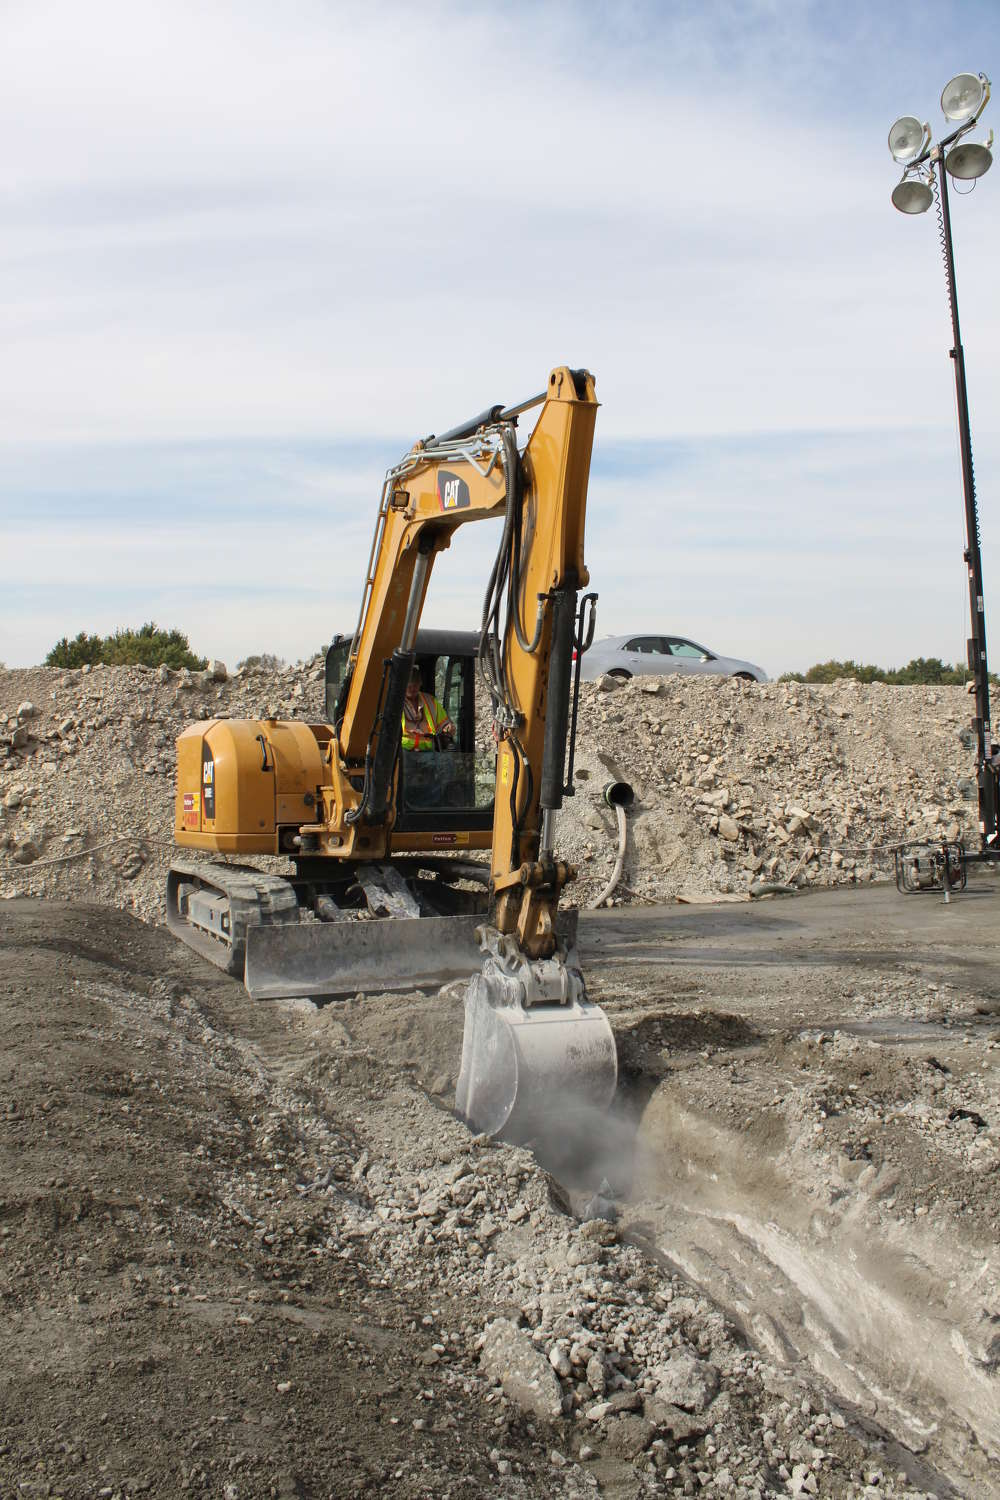 ASI prefers to use as much of its own equipment as possible, and purchases its Cat equipment from Wagner Equipment.